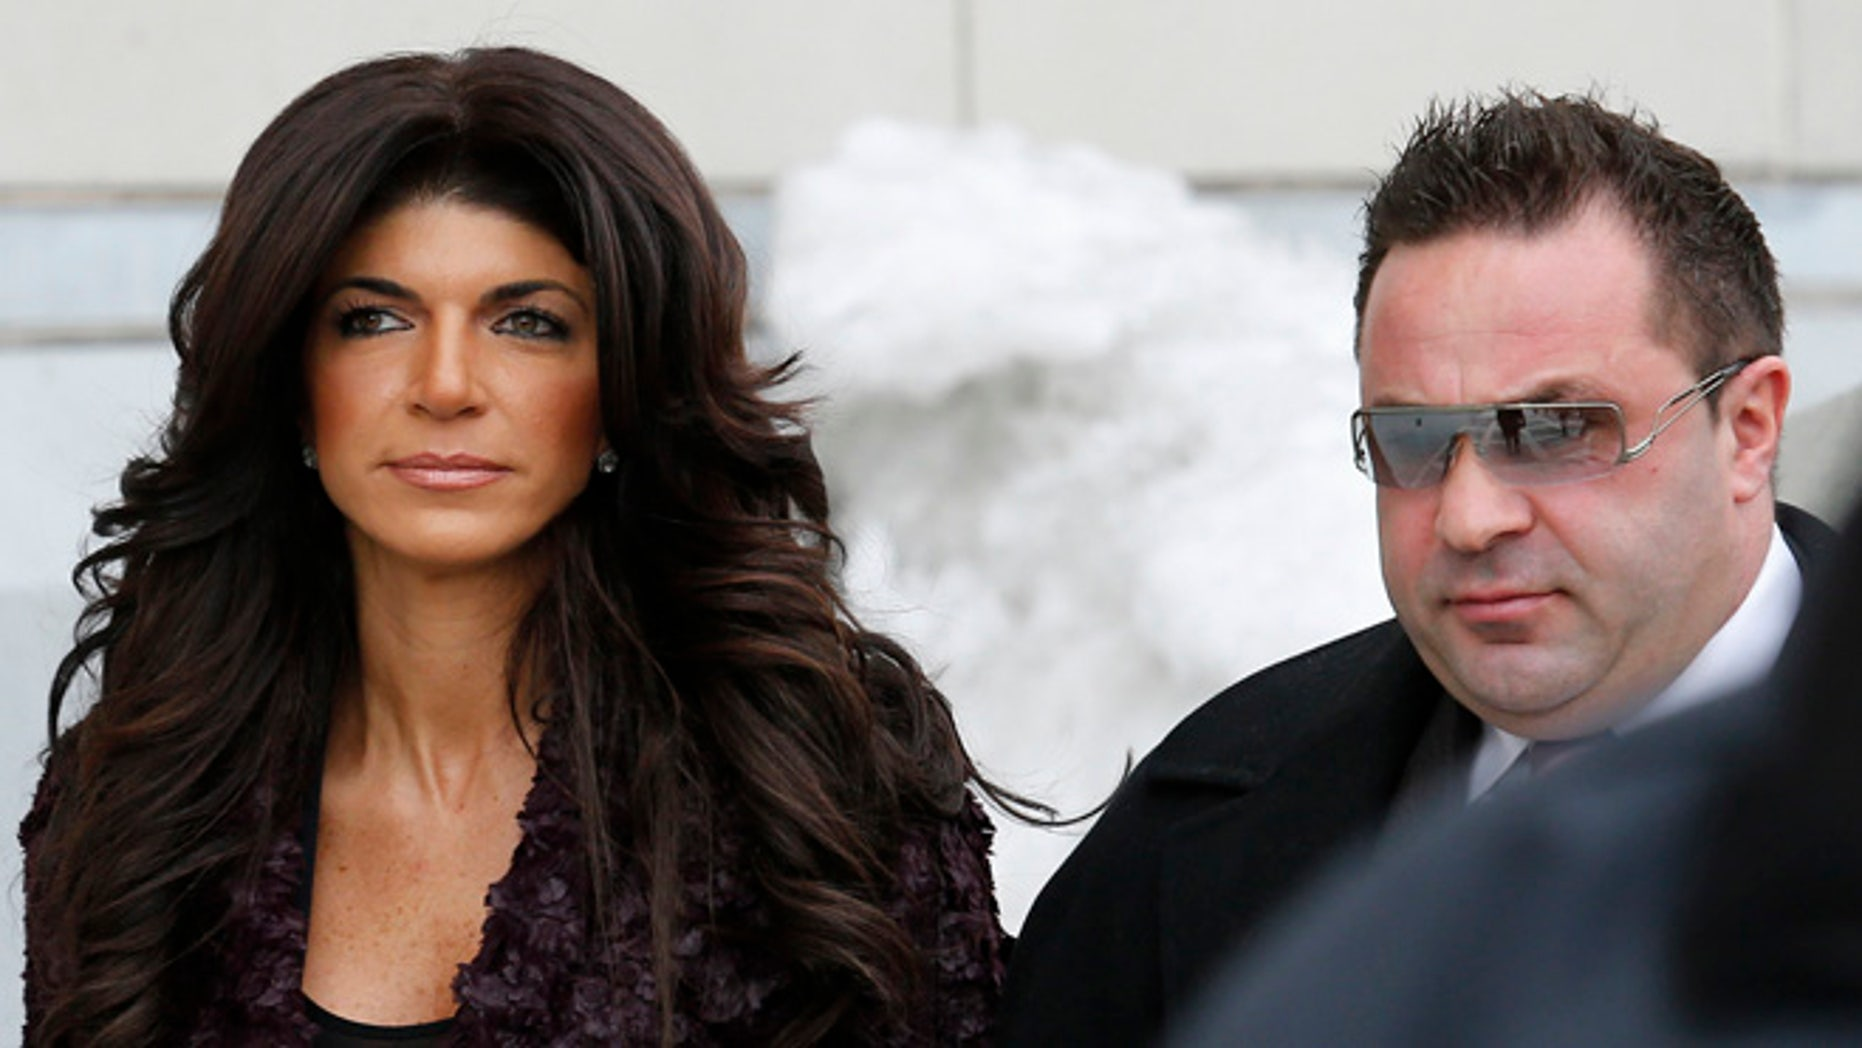 Teresa Giudice reacted to the news her husband, Joe, will be deported after he finishes his prison sentence.